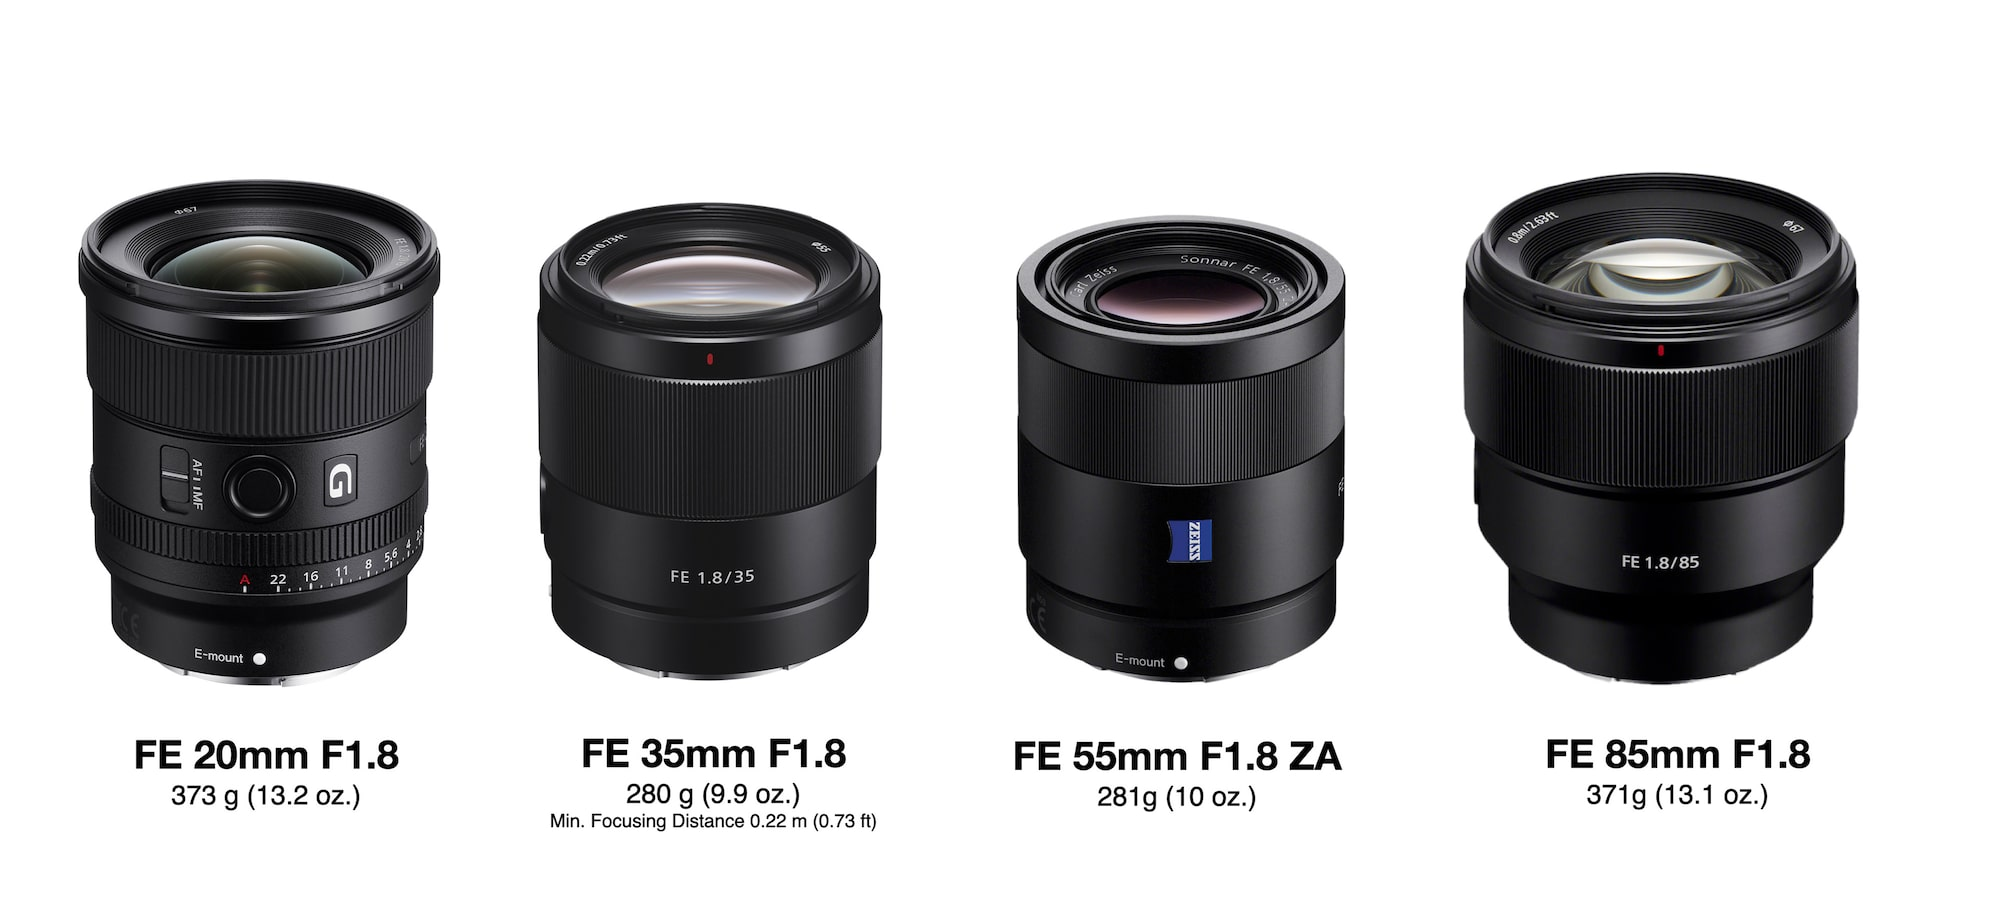 Sony's F1.8 lightweight prime lenses